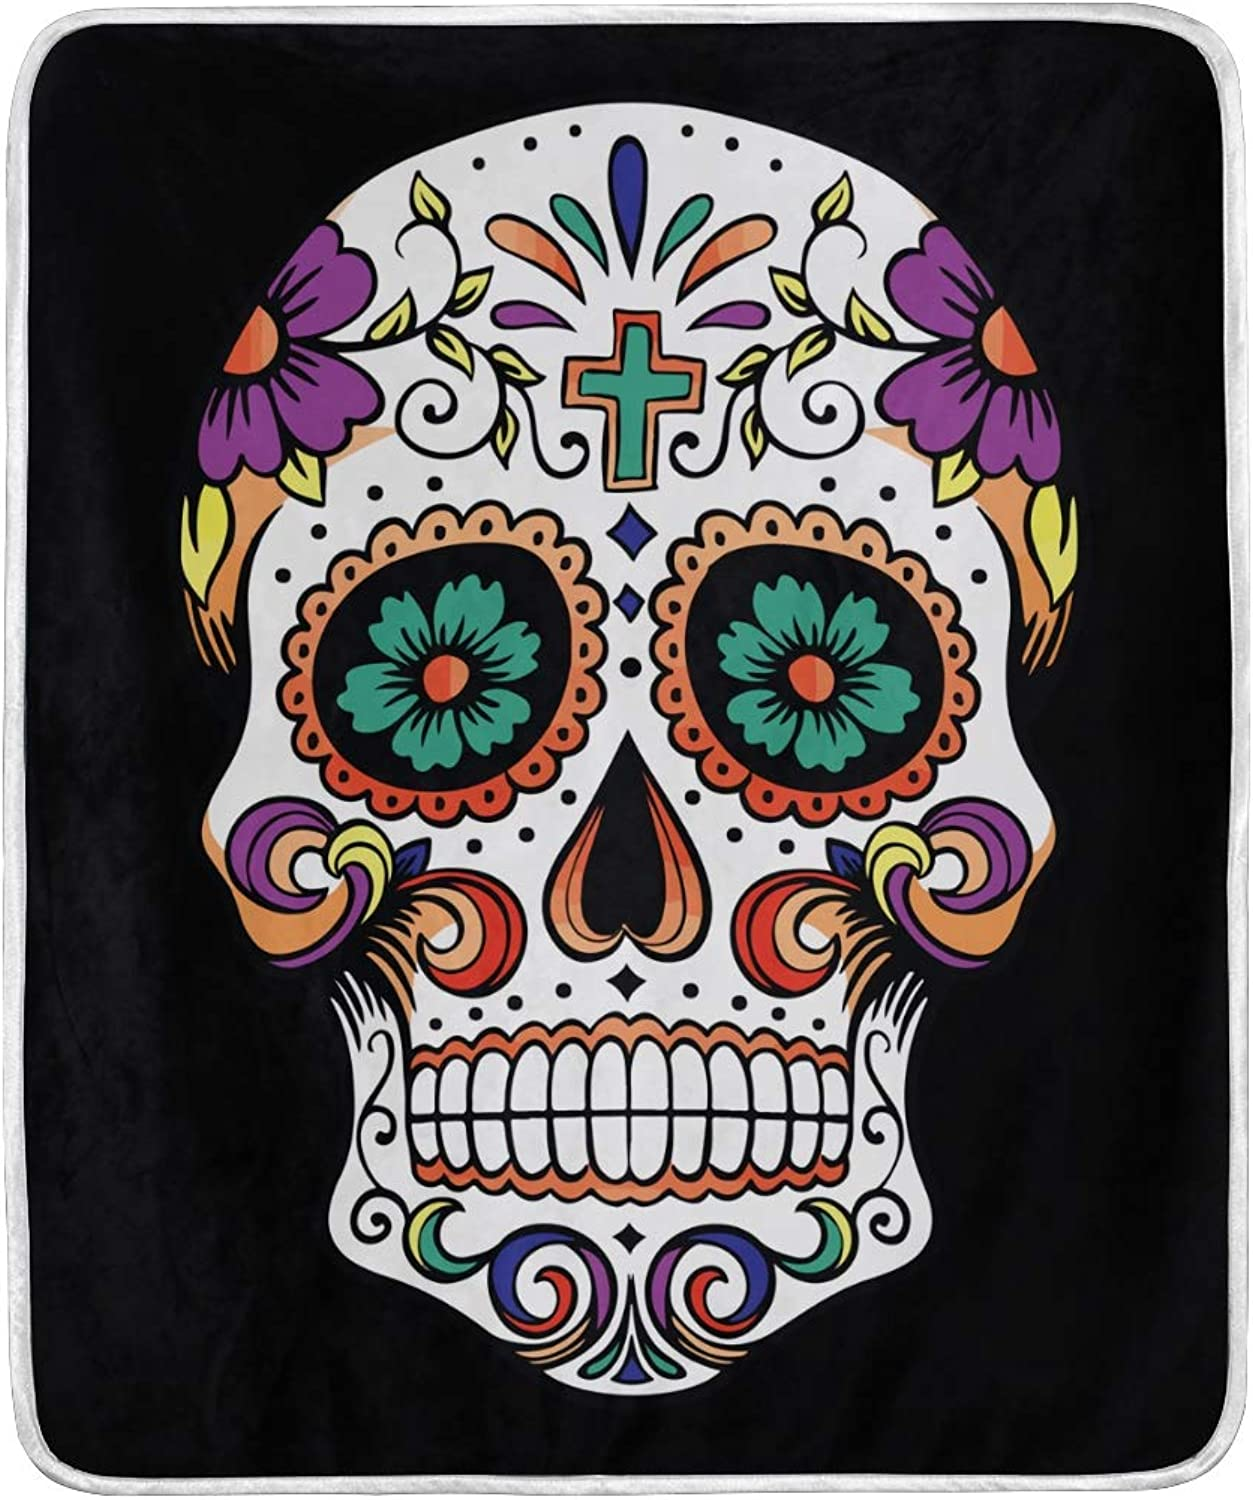 VIMMUCIR Home Decor Sugar Skull colorful Blanket Soft Warm Throw Blankets for Bed Sofa Lightweight Travelling Camping 50 x 60 Inch for Kids Adults